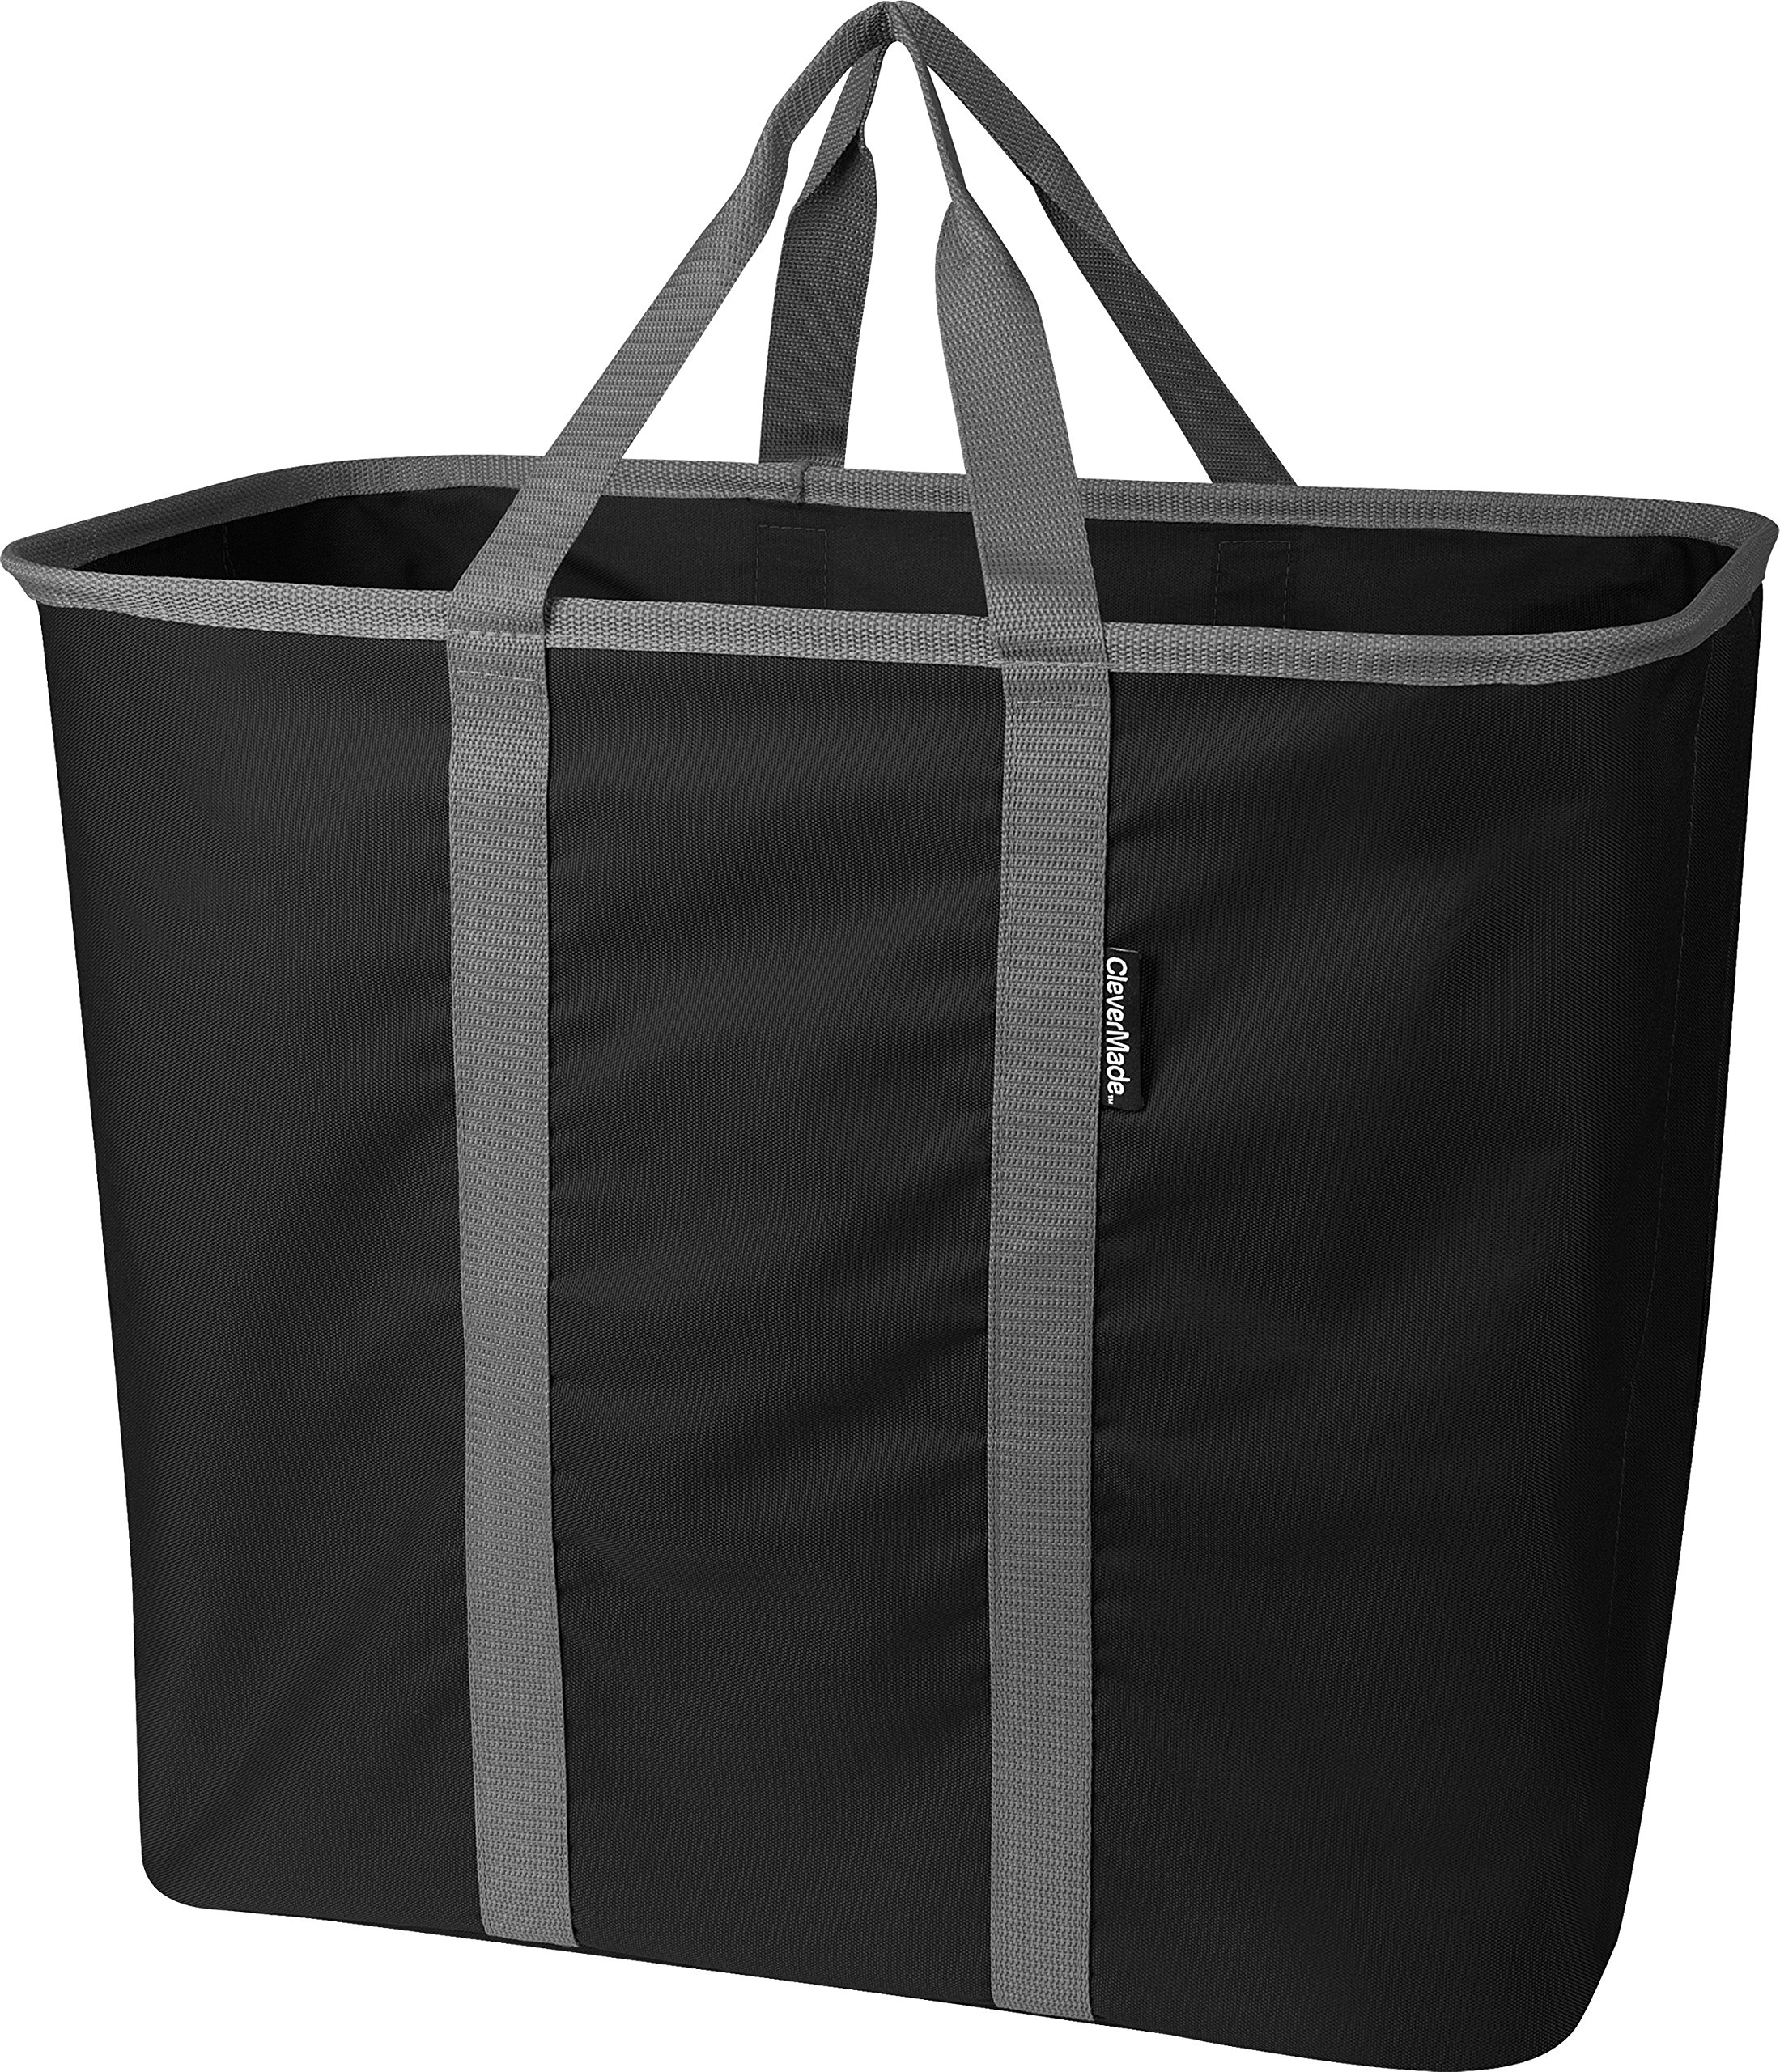 CleverMade SnapBasket LaundryCaddy/CarryAll XL Pop-Up Hamper, Collapsible Laundry Basket, and Extra-Large Tote Bag, Black/Charcoal